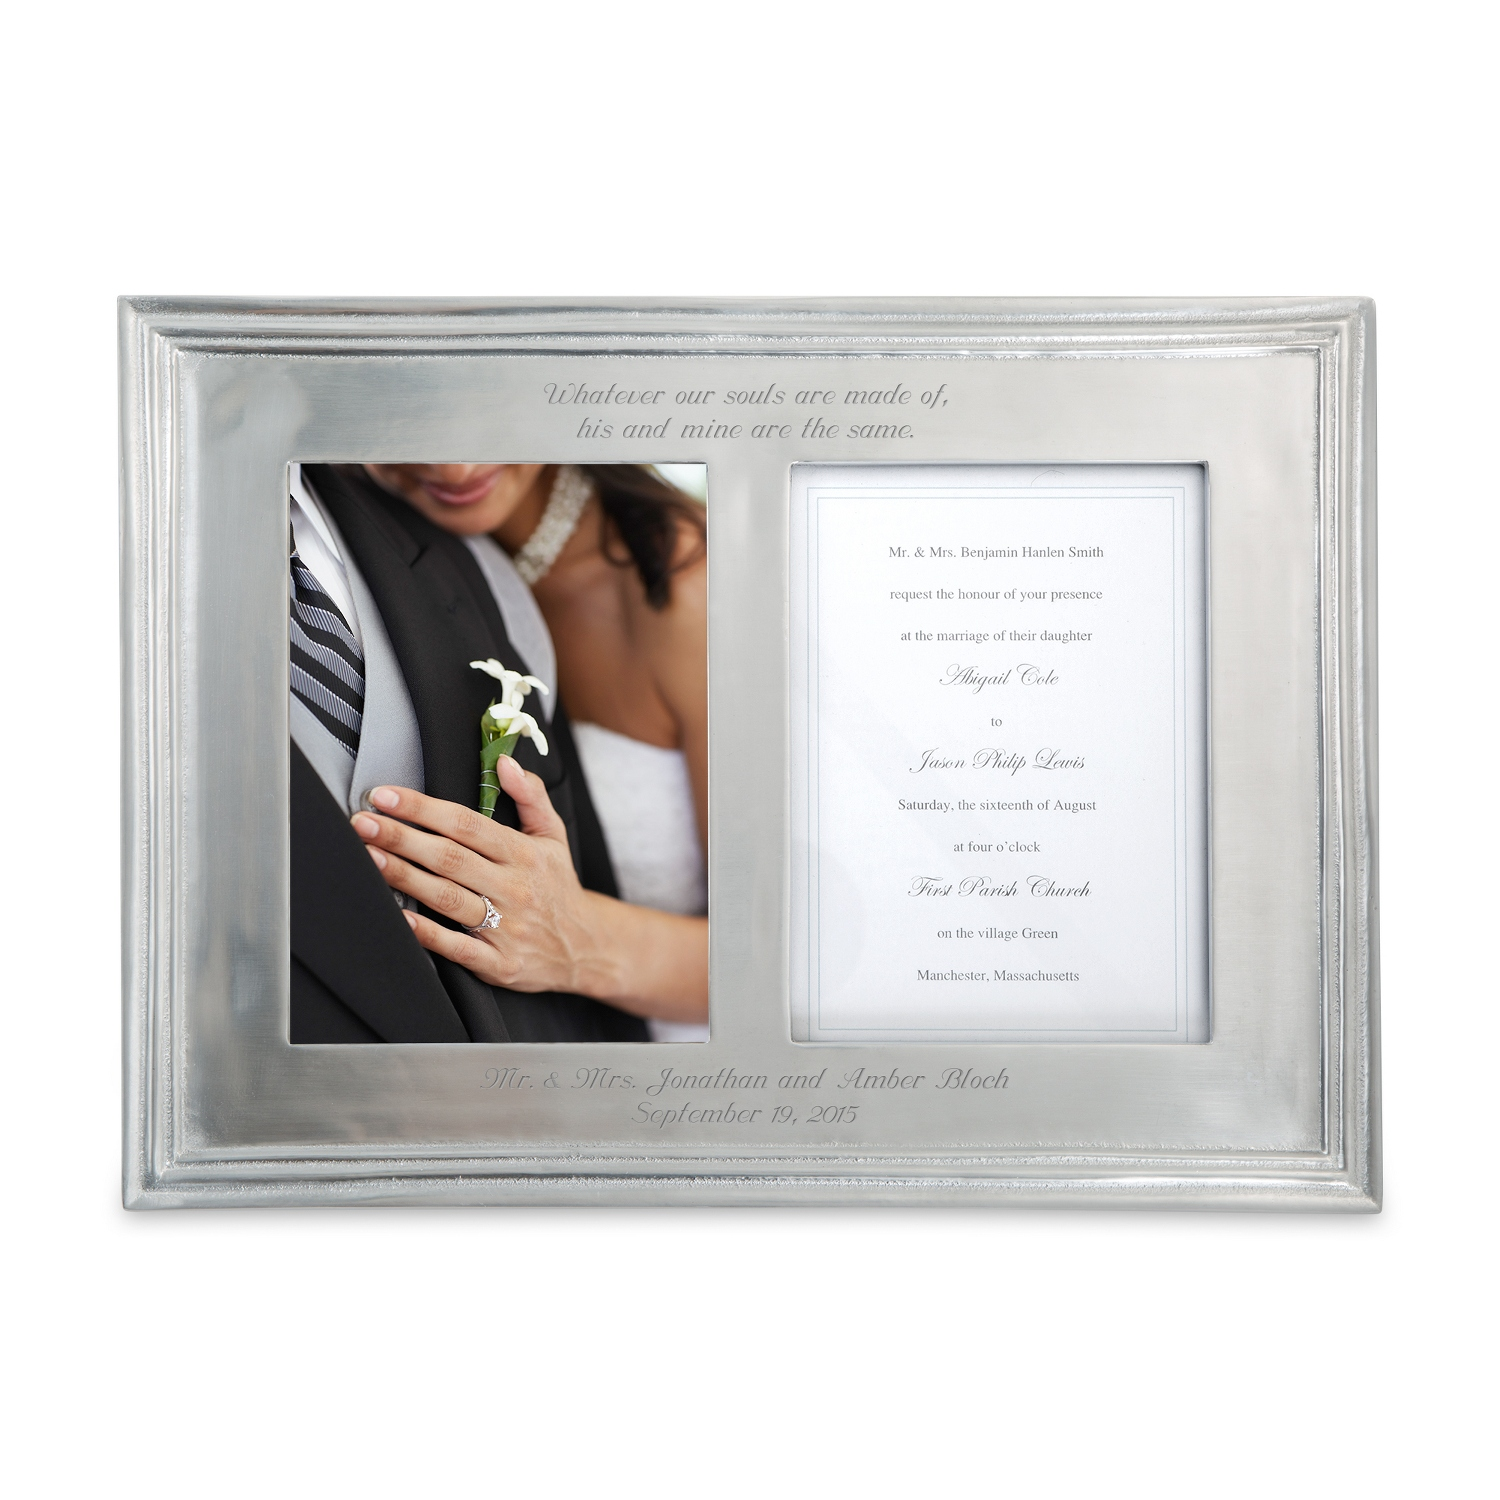 mariposa classic double 5x7 picture frame - Double 5x7 Picture Frame